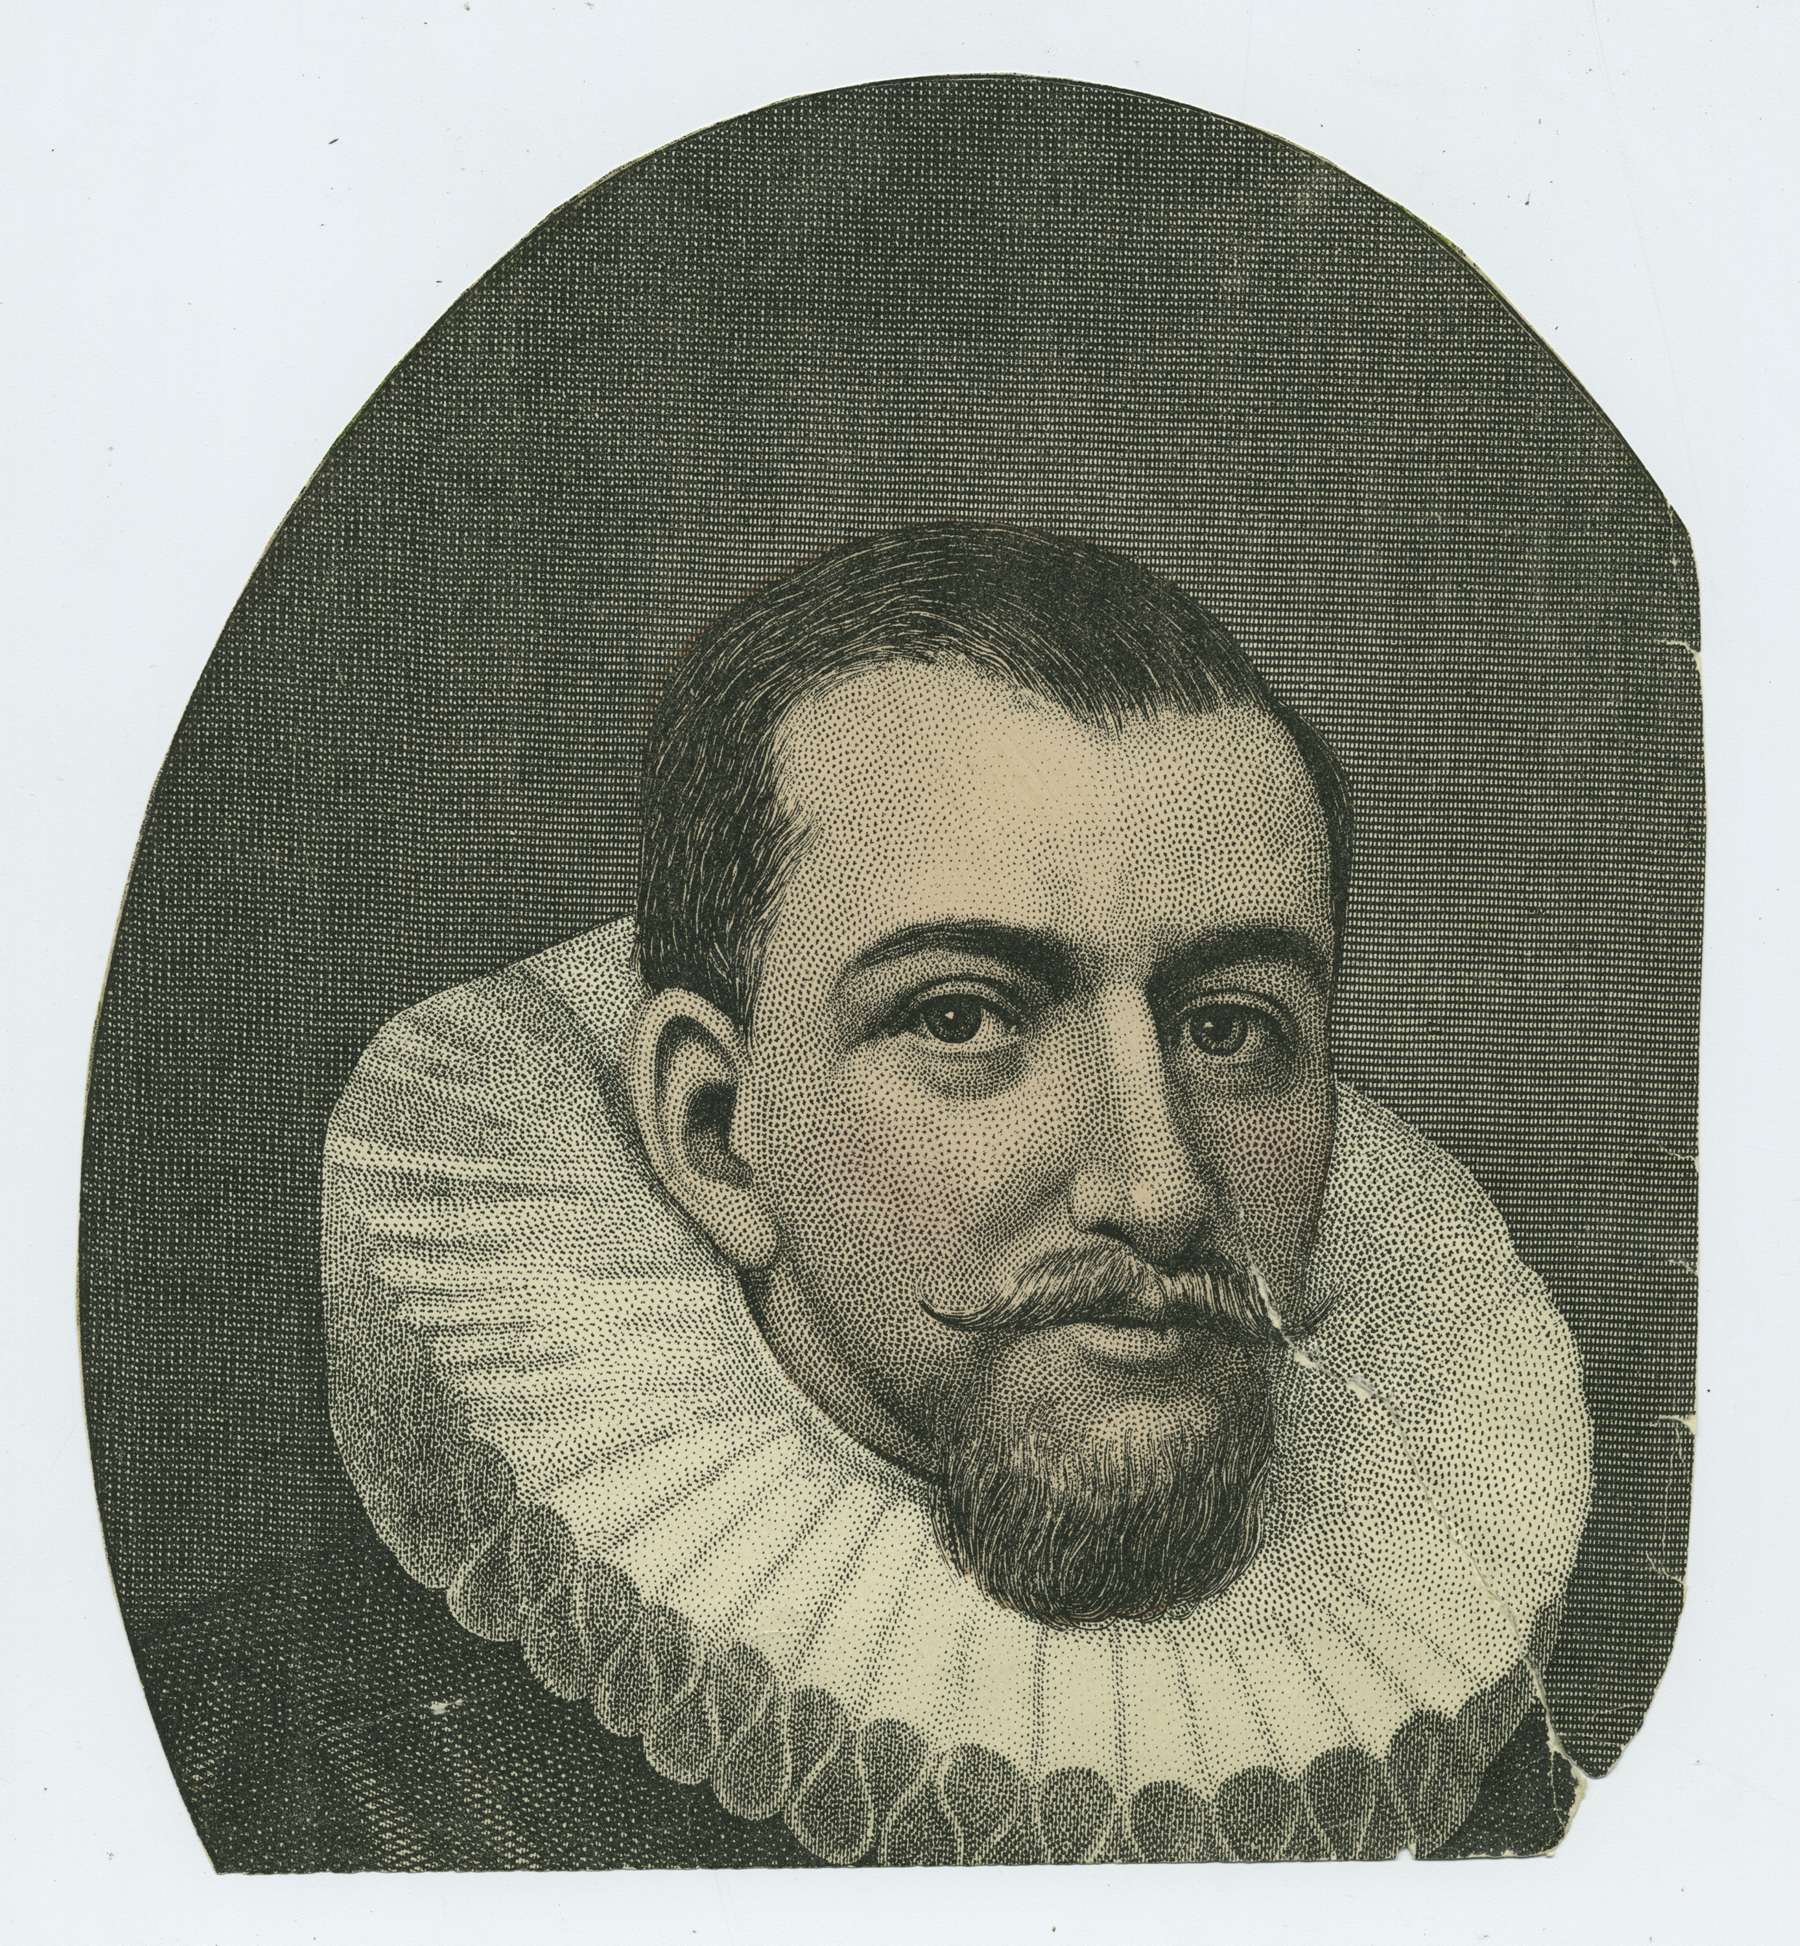 henry hudson Henry hudson, d 1611, english navigator little is known of hudson's early life  in 1607, hudson, working for the english muscovy company, reached the polar.